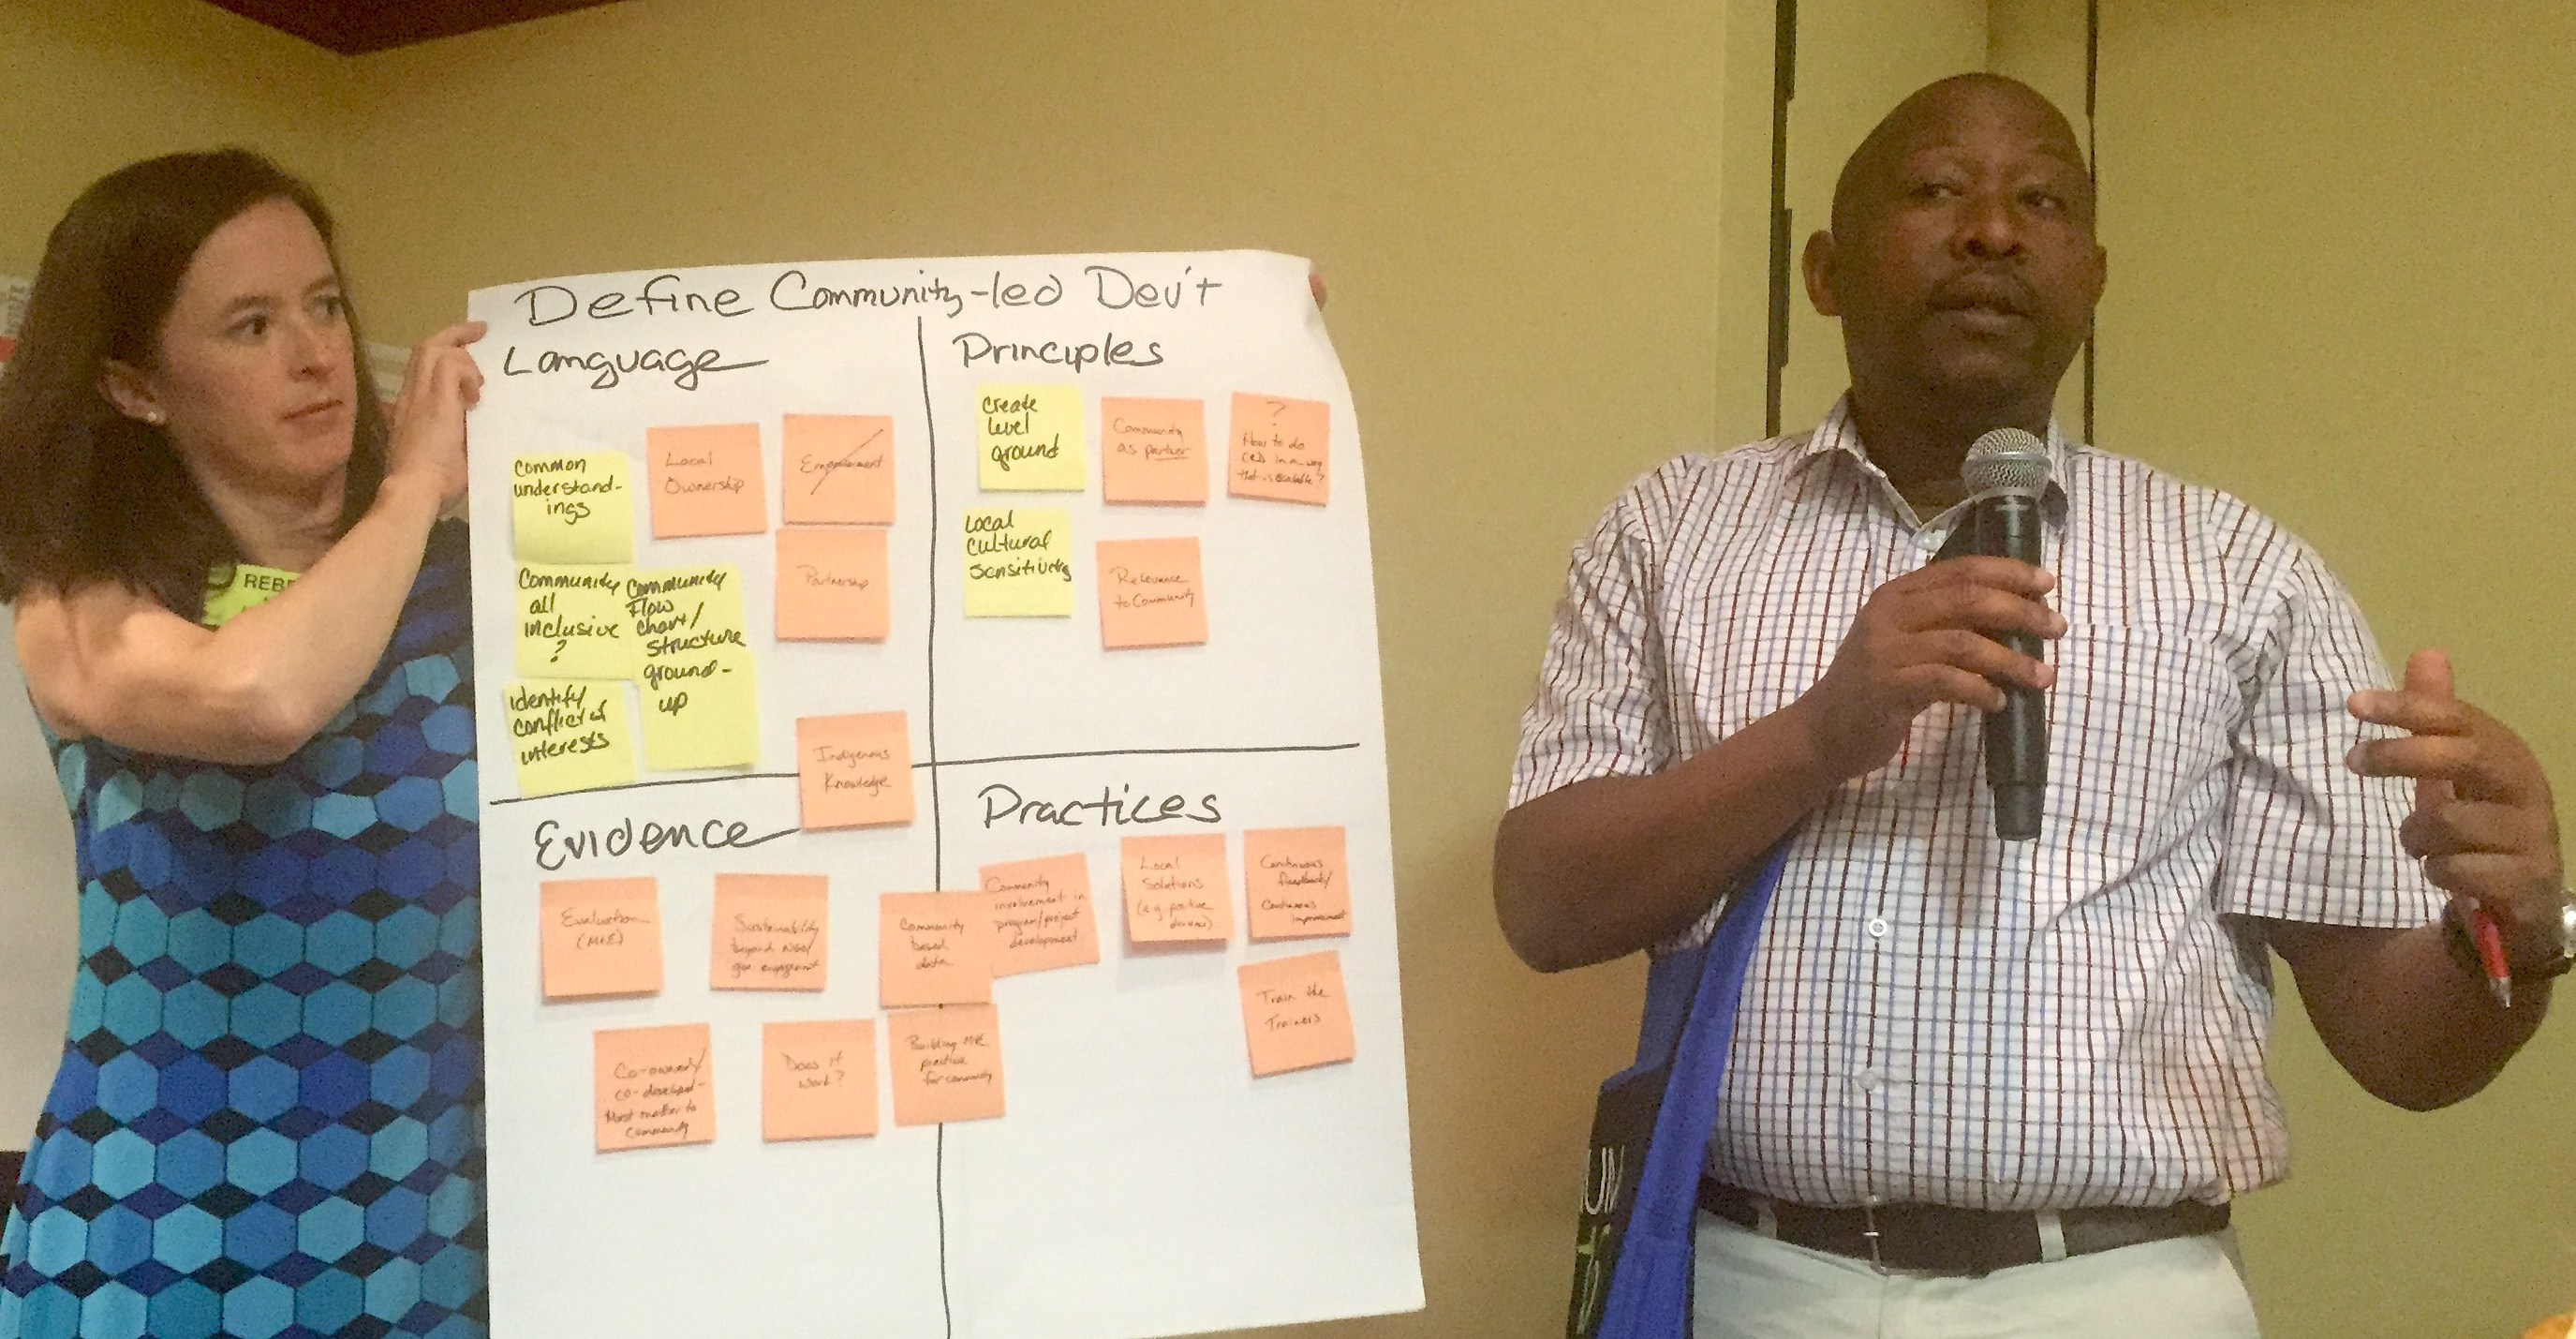 Creating the Campaign for Community-led Development